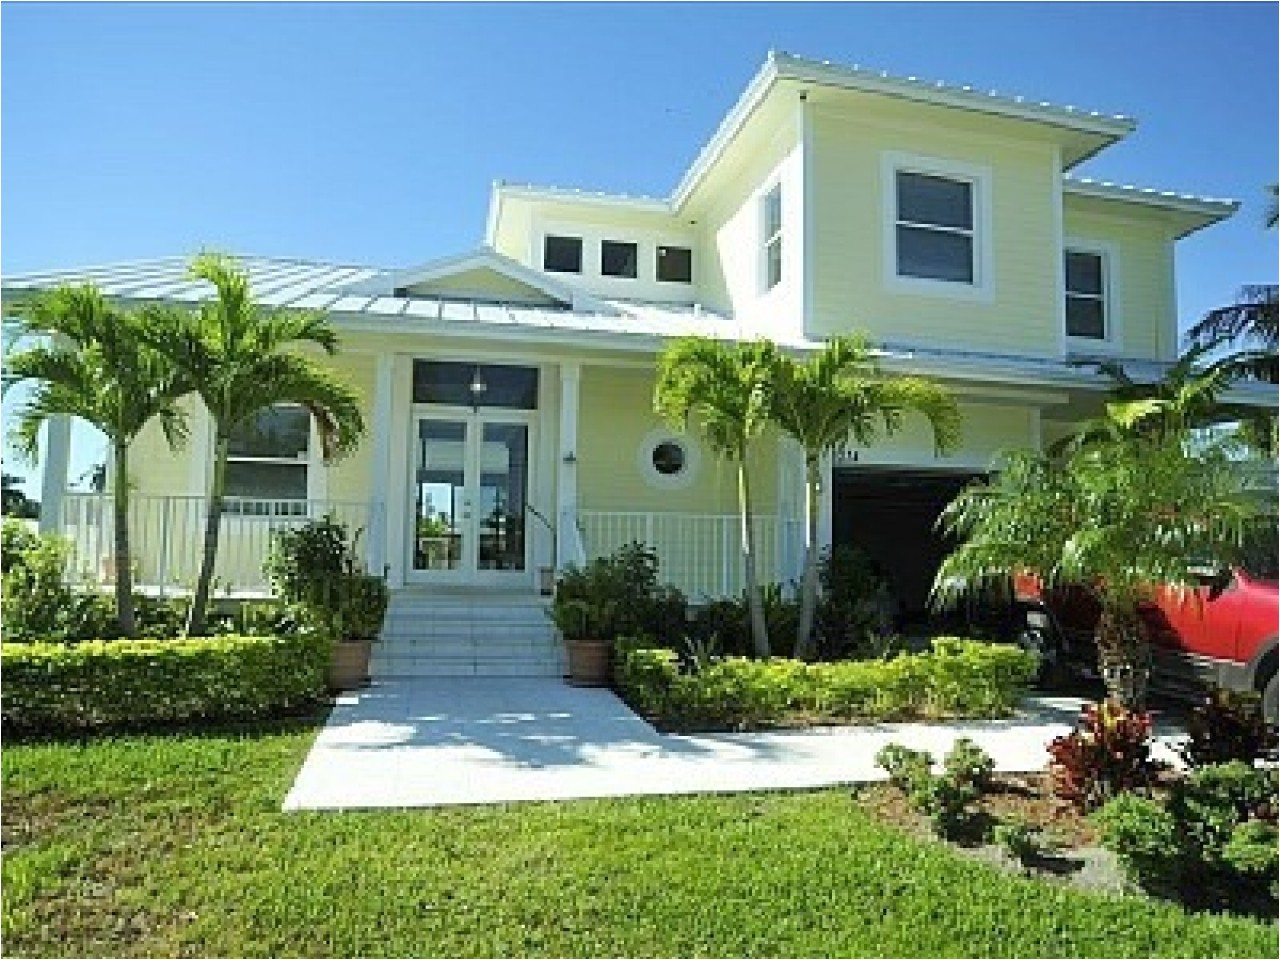 West Home Plans Key West Style Homes House Plans Style Key West Cottages